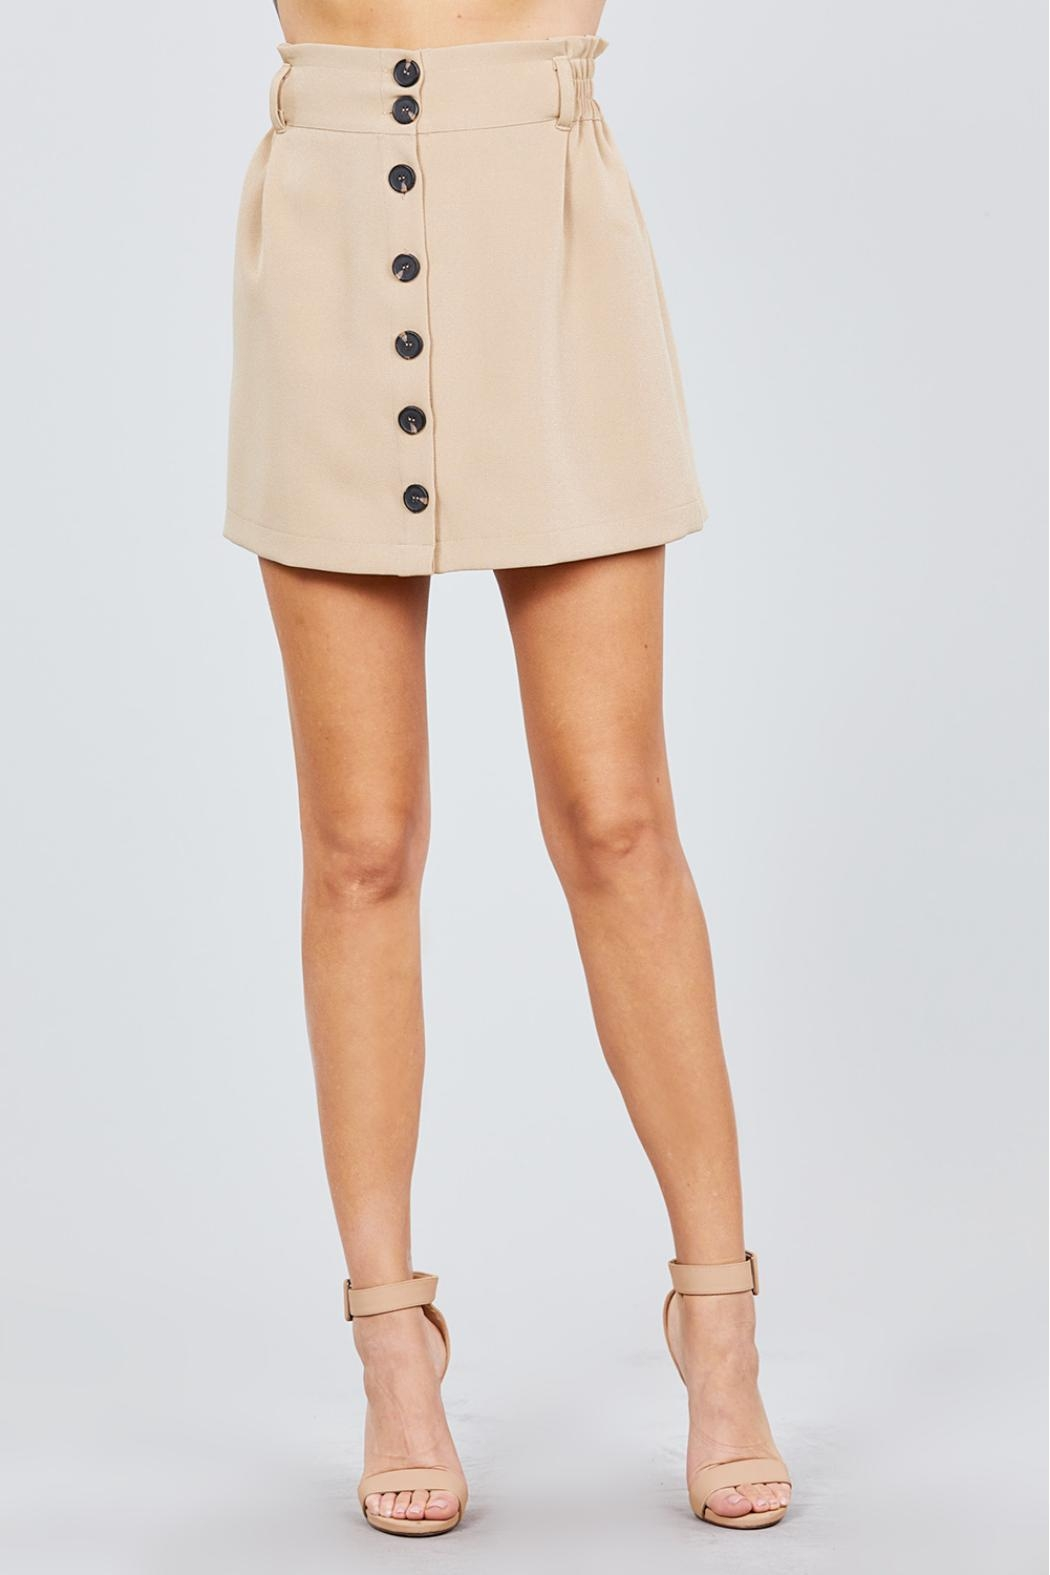 Active USA Khaki Button-Down Skirt - Front Full Image